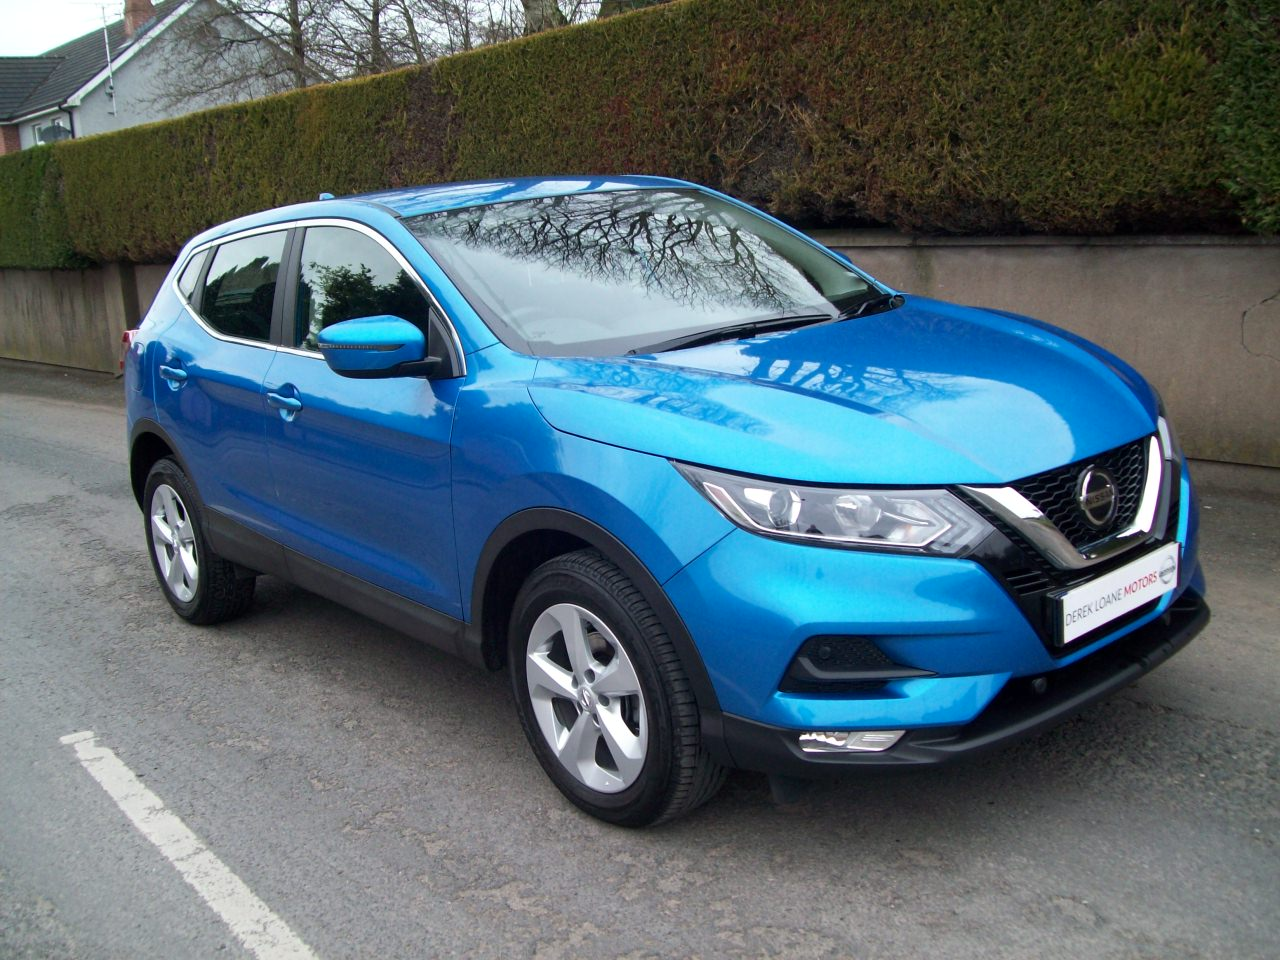 2019 Nissan Qashqai Diesel Manual – Derek Loane Motors full